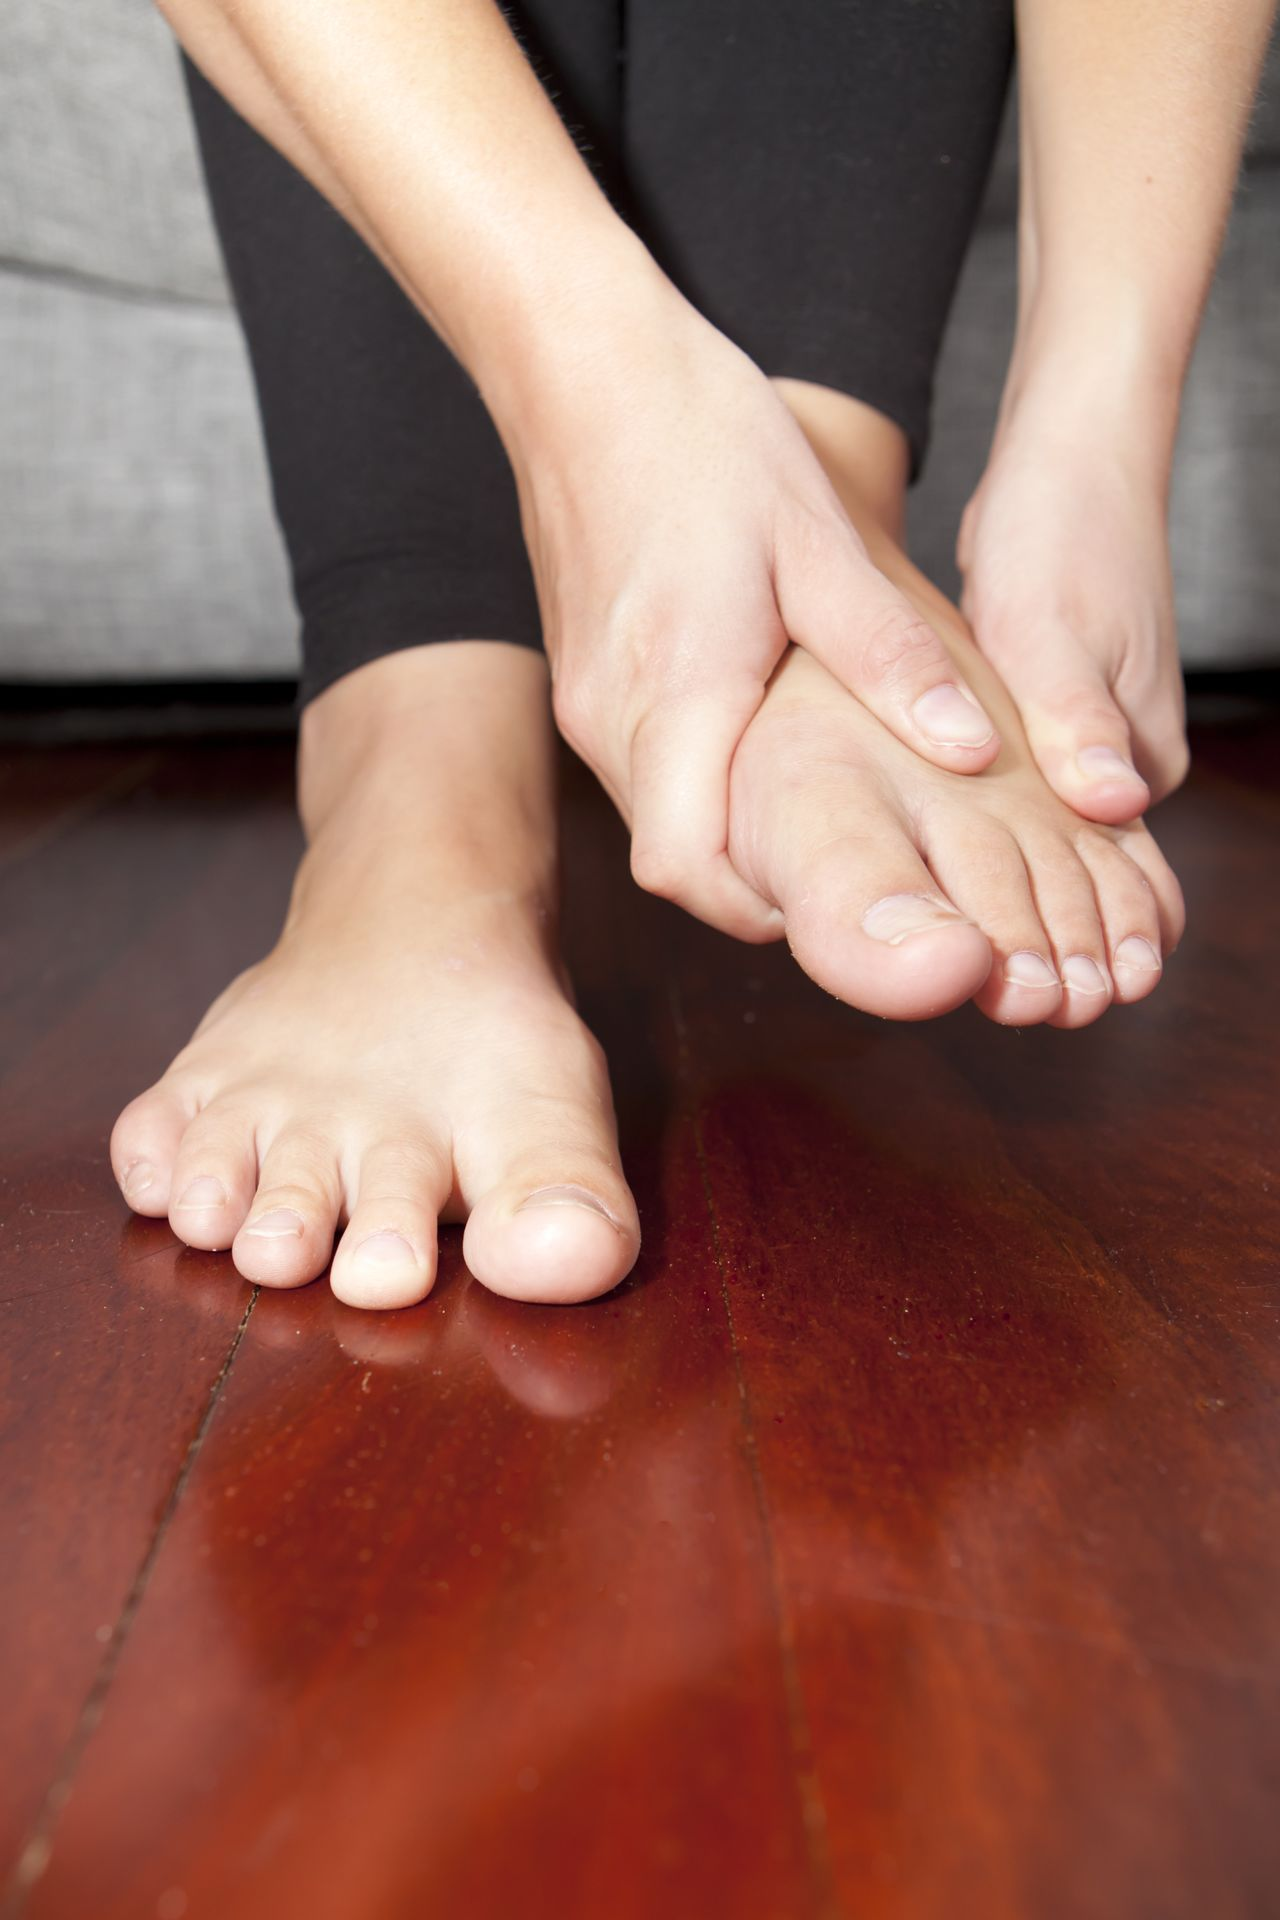 There are many different types of arthritis but all are painful for your feet